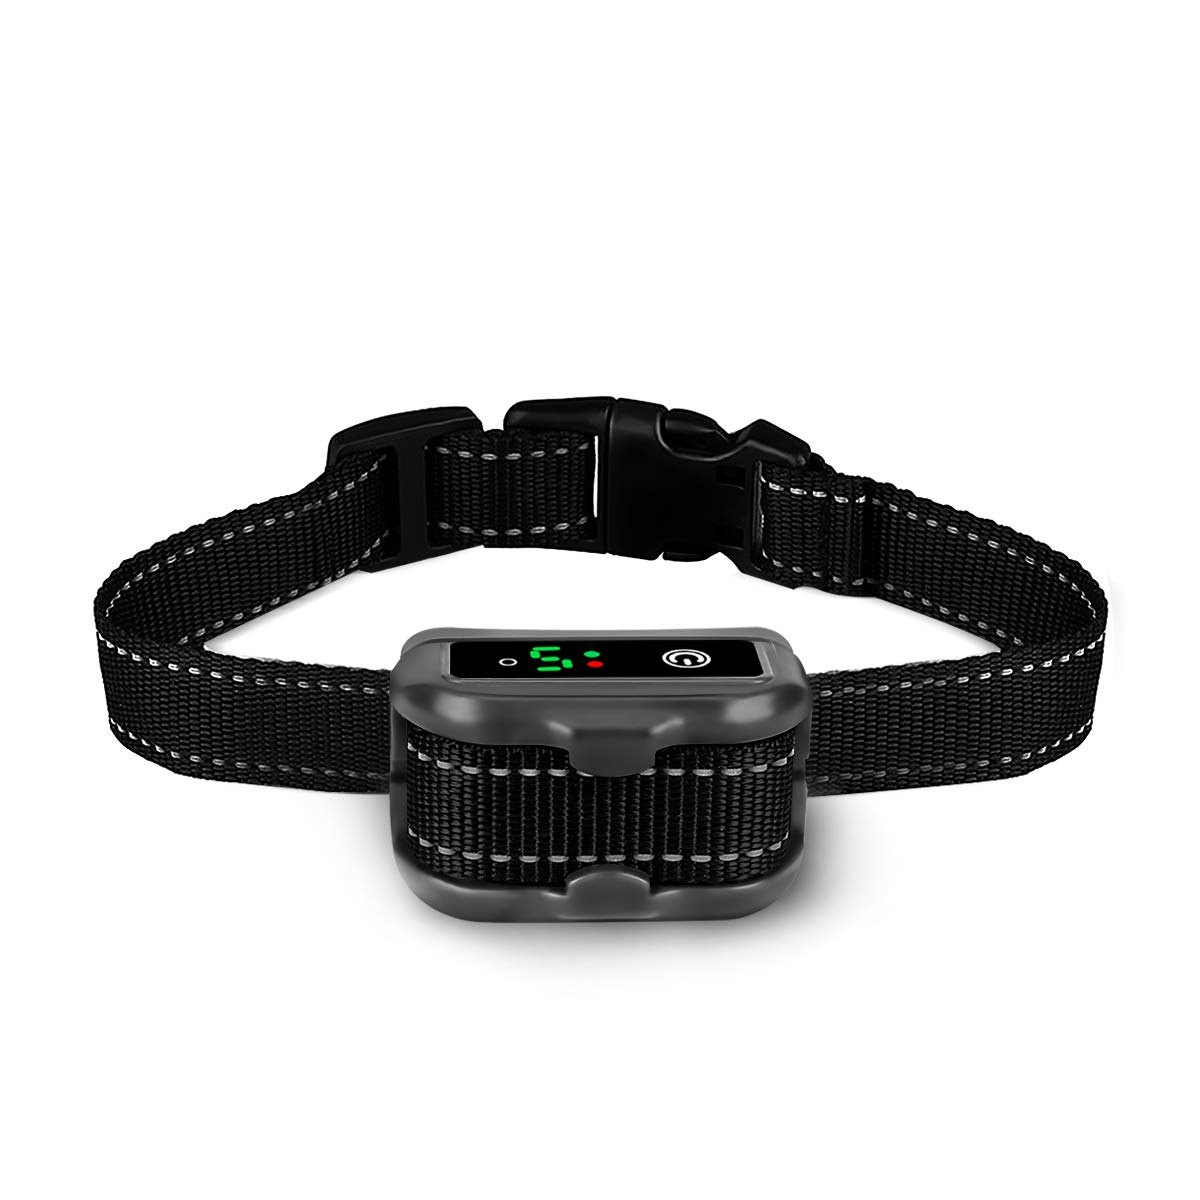 ieGeek Rechargeable Dog Bark Collar, Anti-Barking Collar with Beep, Vibration  Static Shock Modes,No Shock and Bark Collar E-collar IP67 Waterproof, Easy to Use for Small, Medium and Large and Dogs